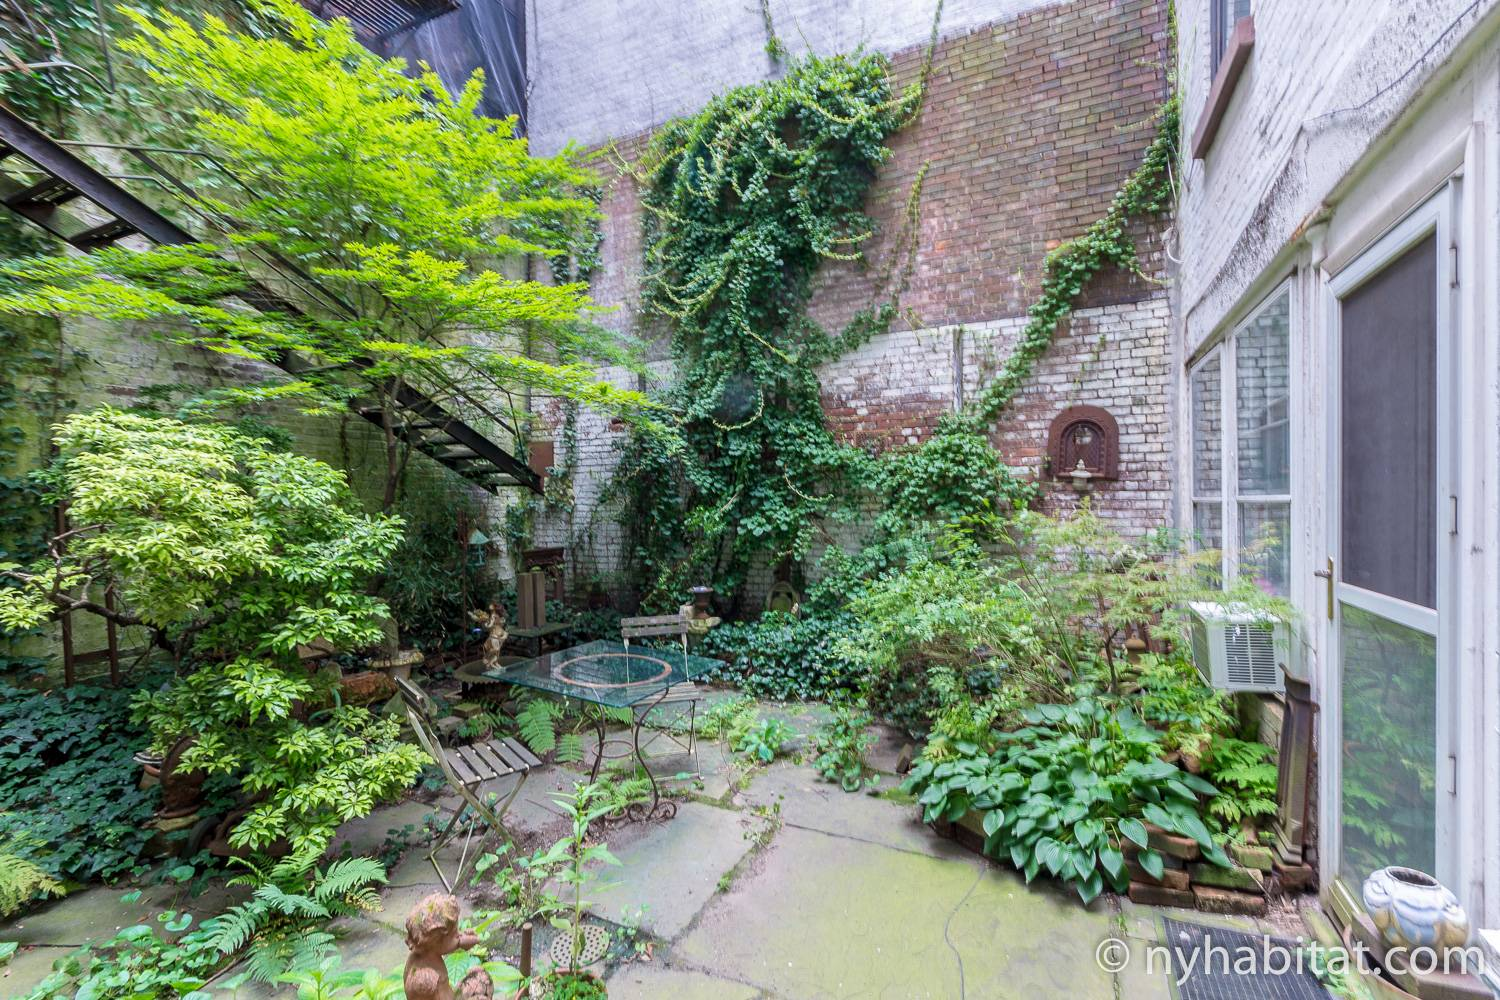 Image of garden area in NY-15343 with outdoor patio and table and chairs.